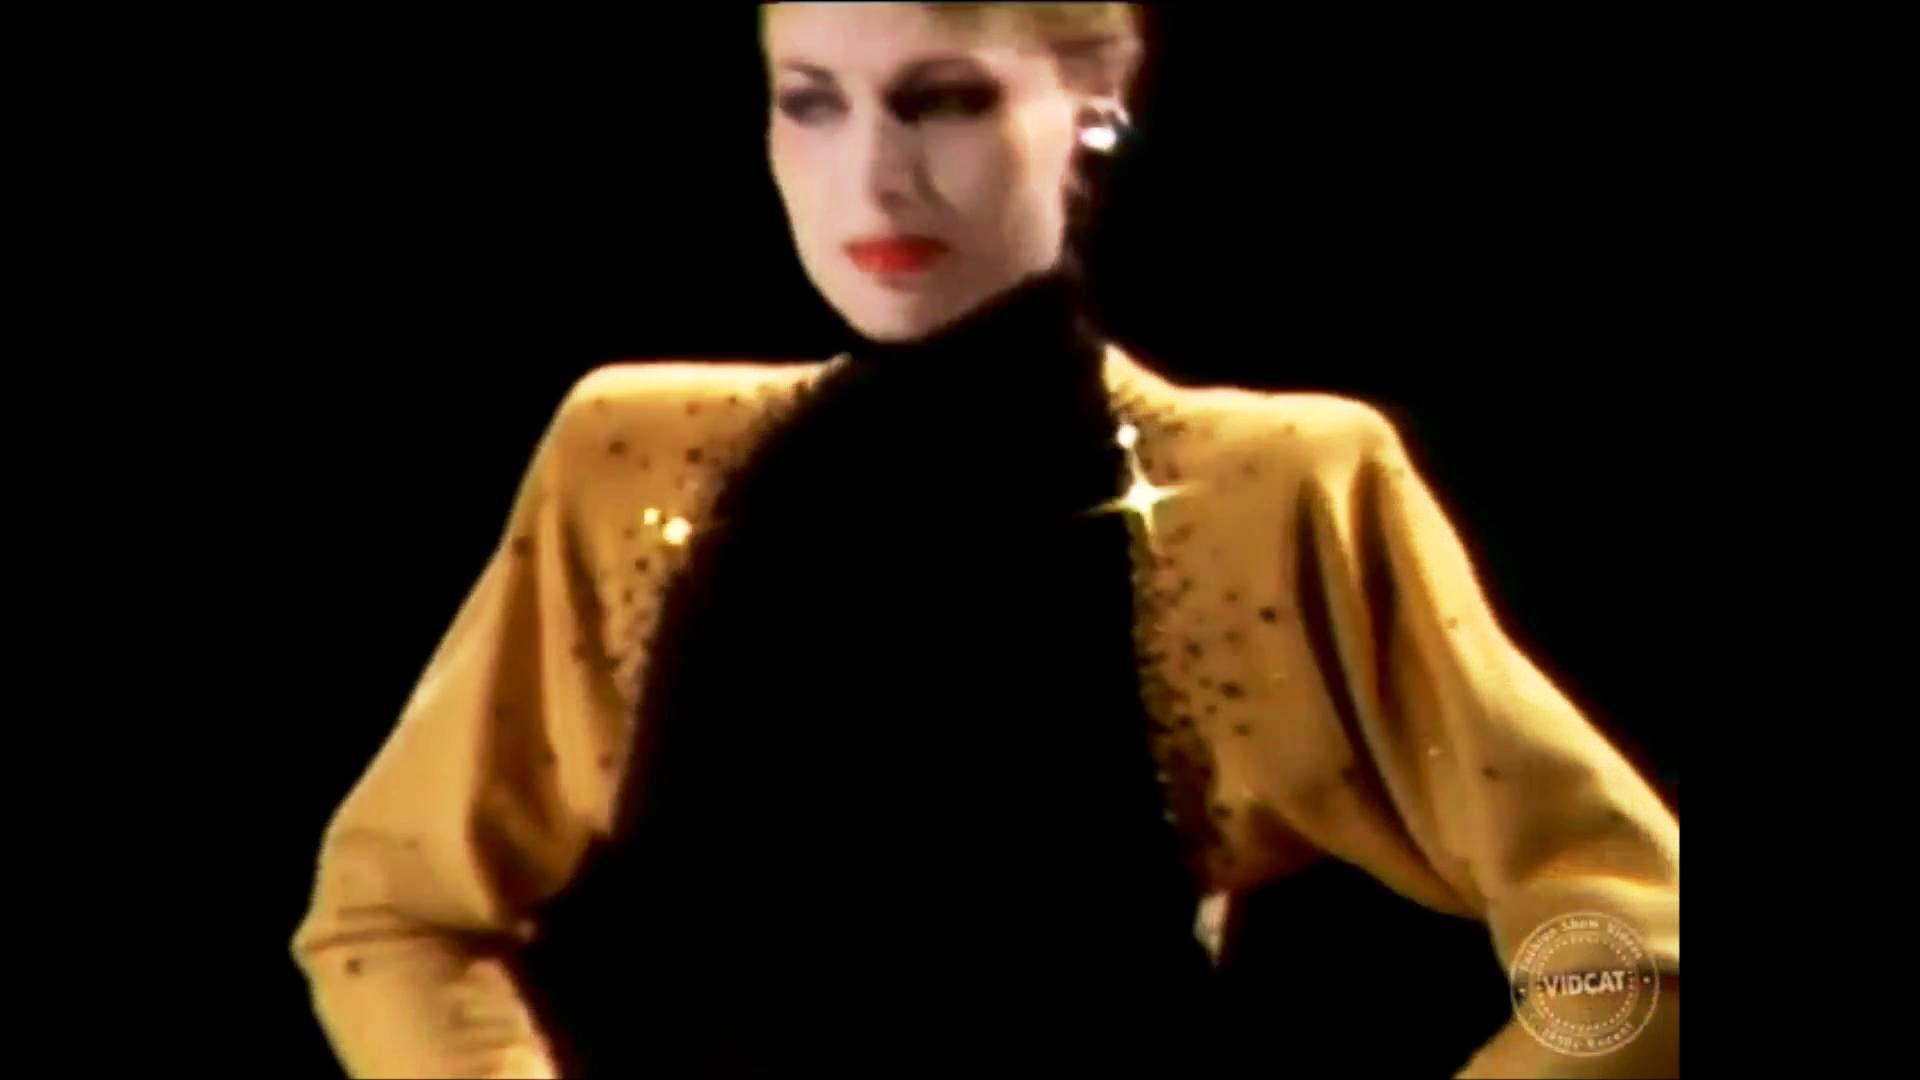 Video Download: 1980s Fashion Shows